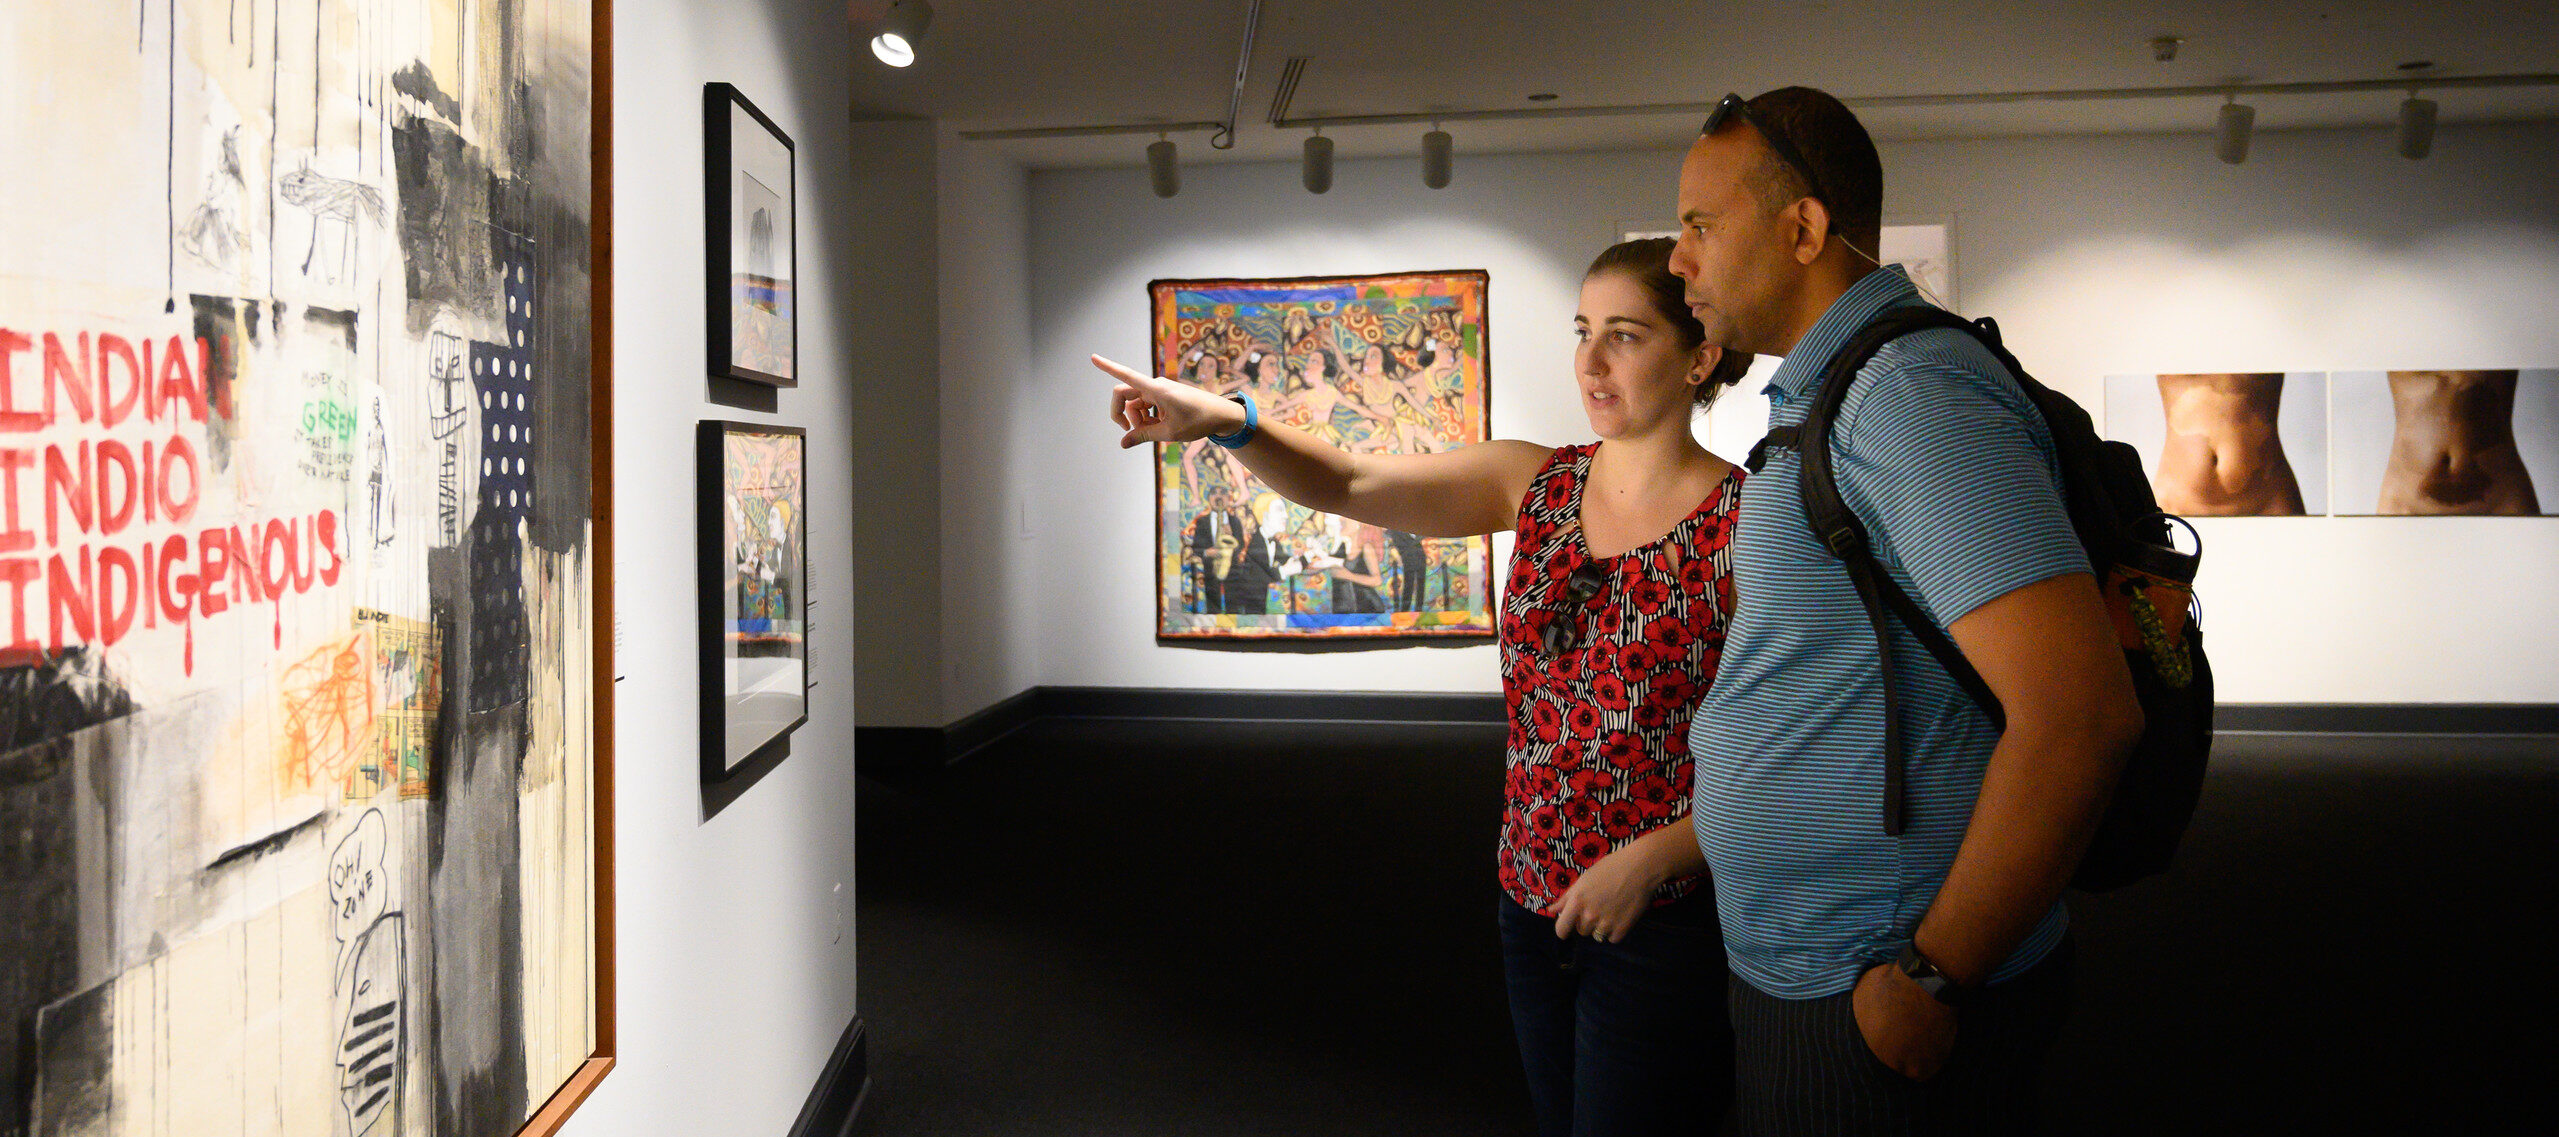 "Partial gallery view of a man and woman pointing at framed artworks on a wall. The large work in the foreground has the words ""INDIAN INDIO INDIGENOUS"" in red hand-drawn letters against a background of red and black painted sections and drips."